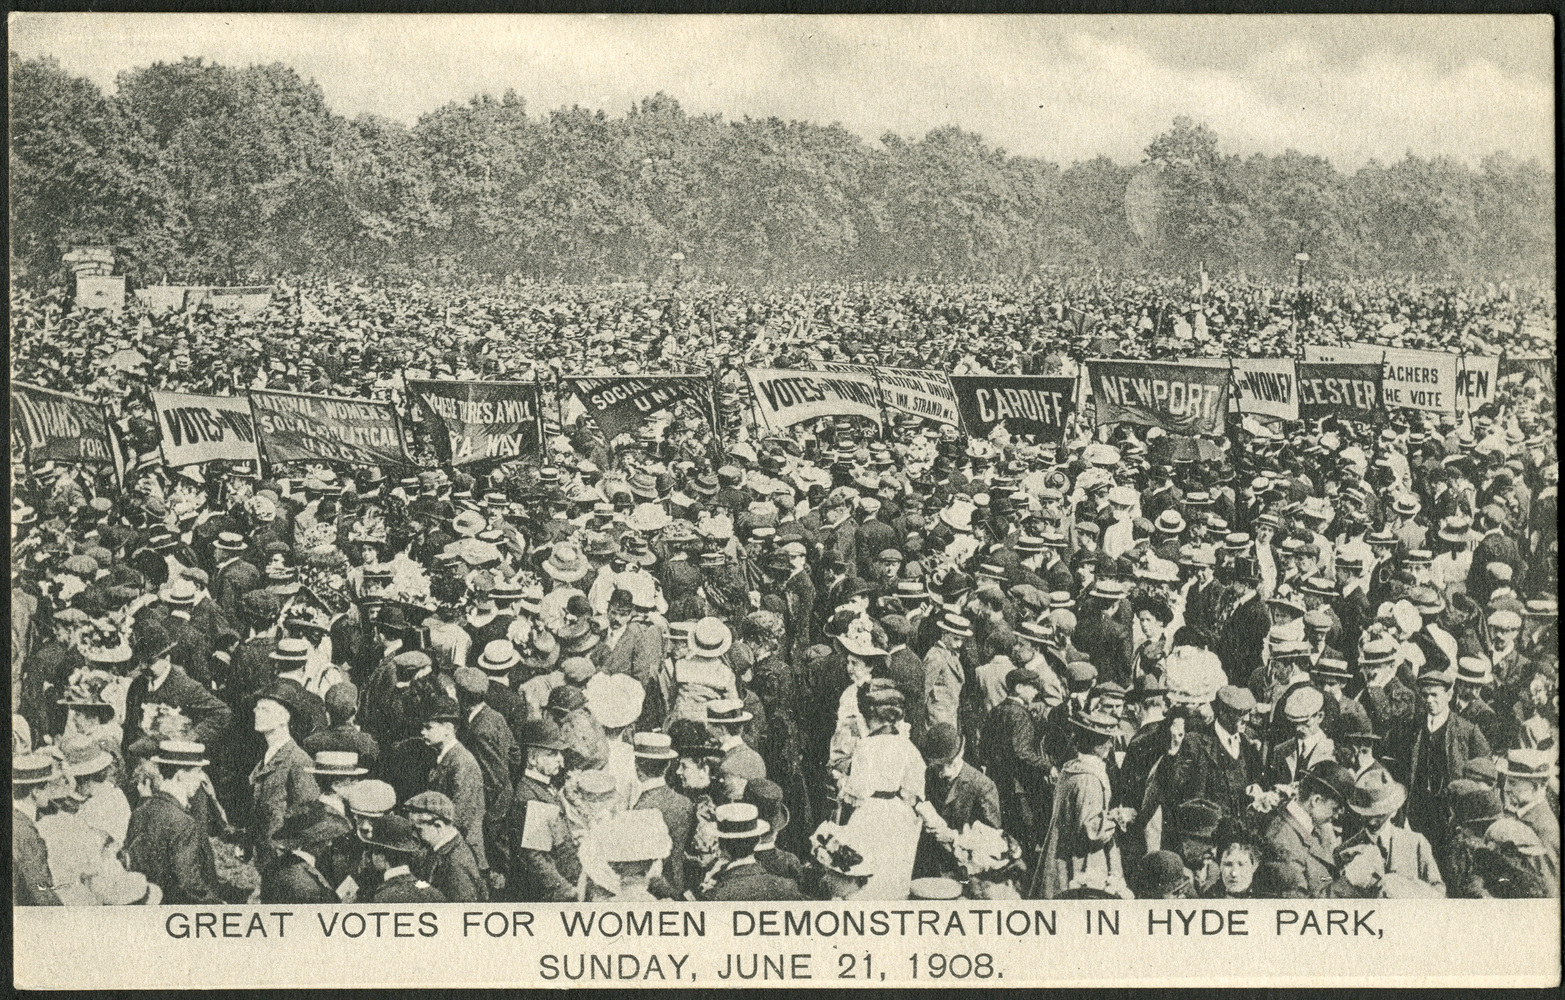 Postcard, Great Votes for Women demonstration in Hyde Park. Sunday 21 June 1908